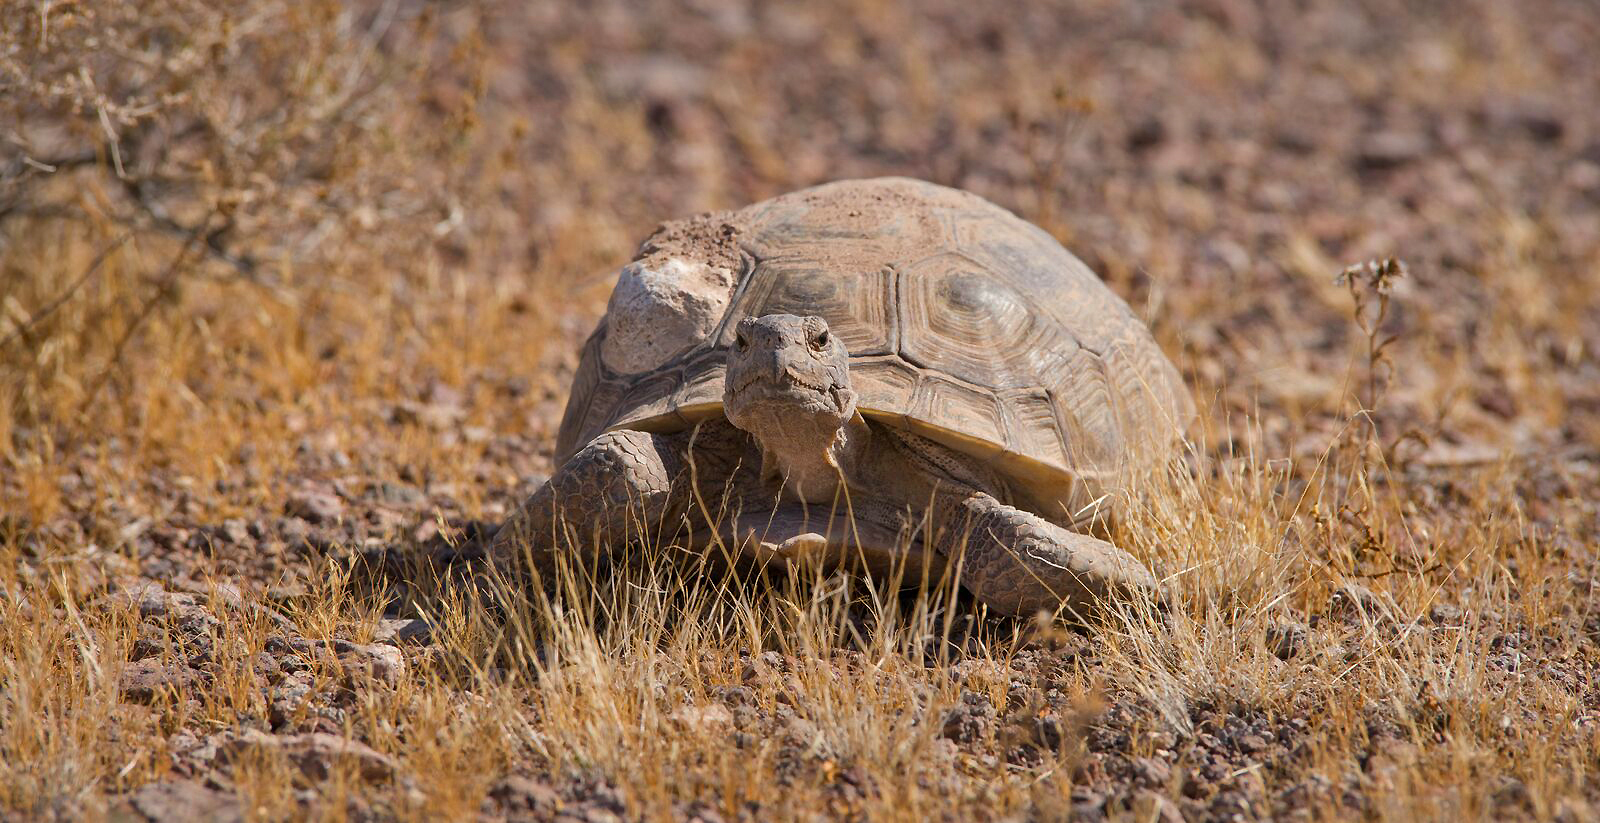 The U.S. Fish and Wildlife Service and several partners, including U.S. Geological Survey, the Bureau of Land Management, and the National Park Service, are working to defend the tortoise and its Mojave Desert home from invasive grasses. Cr.jpg